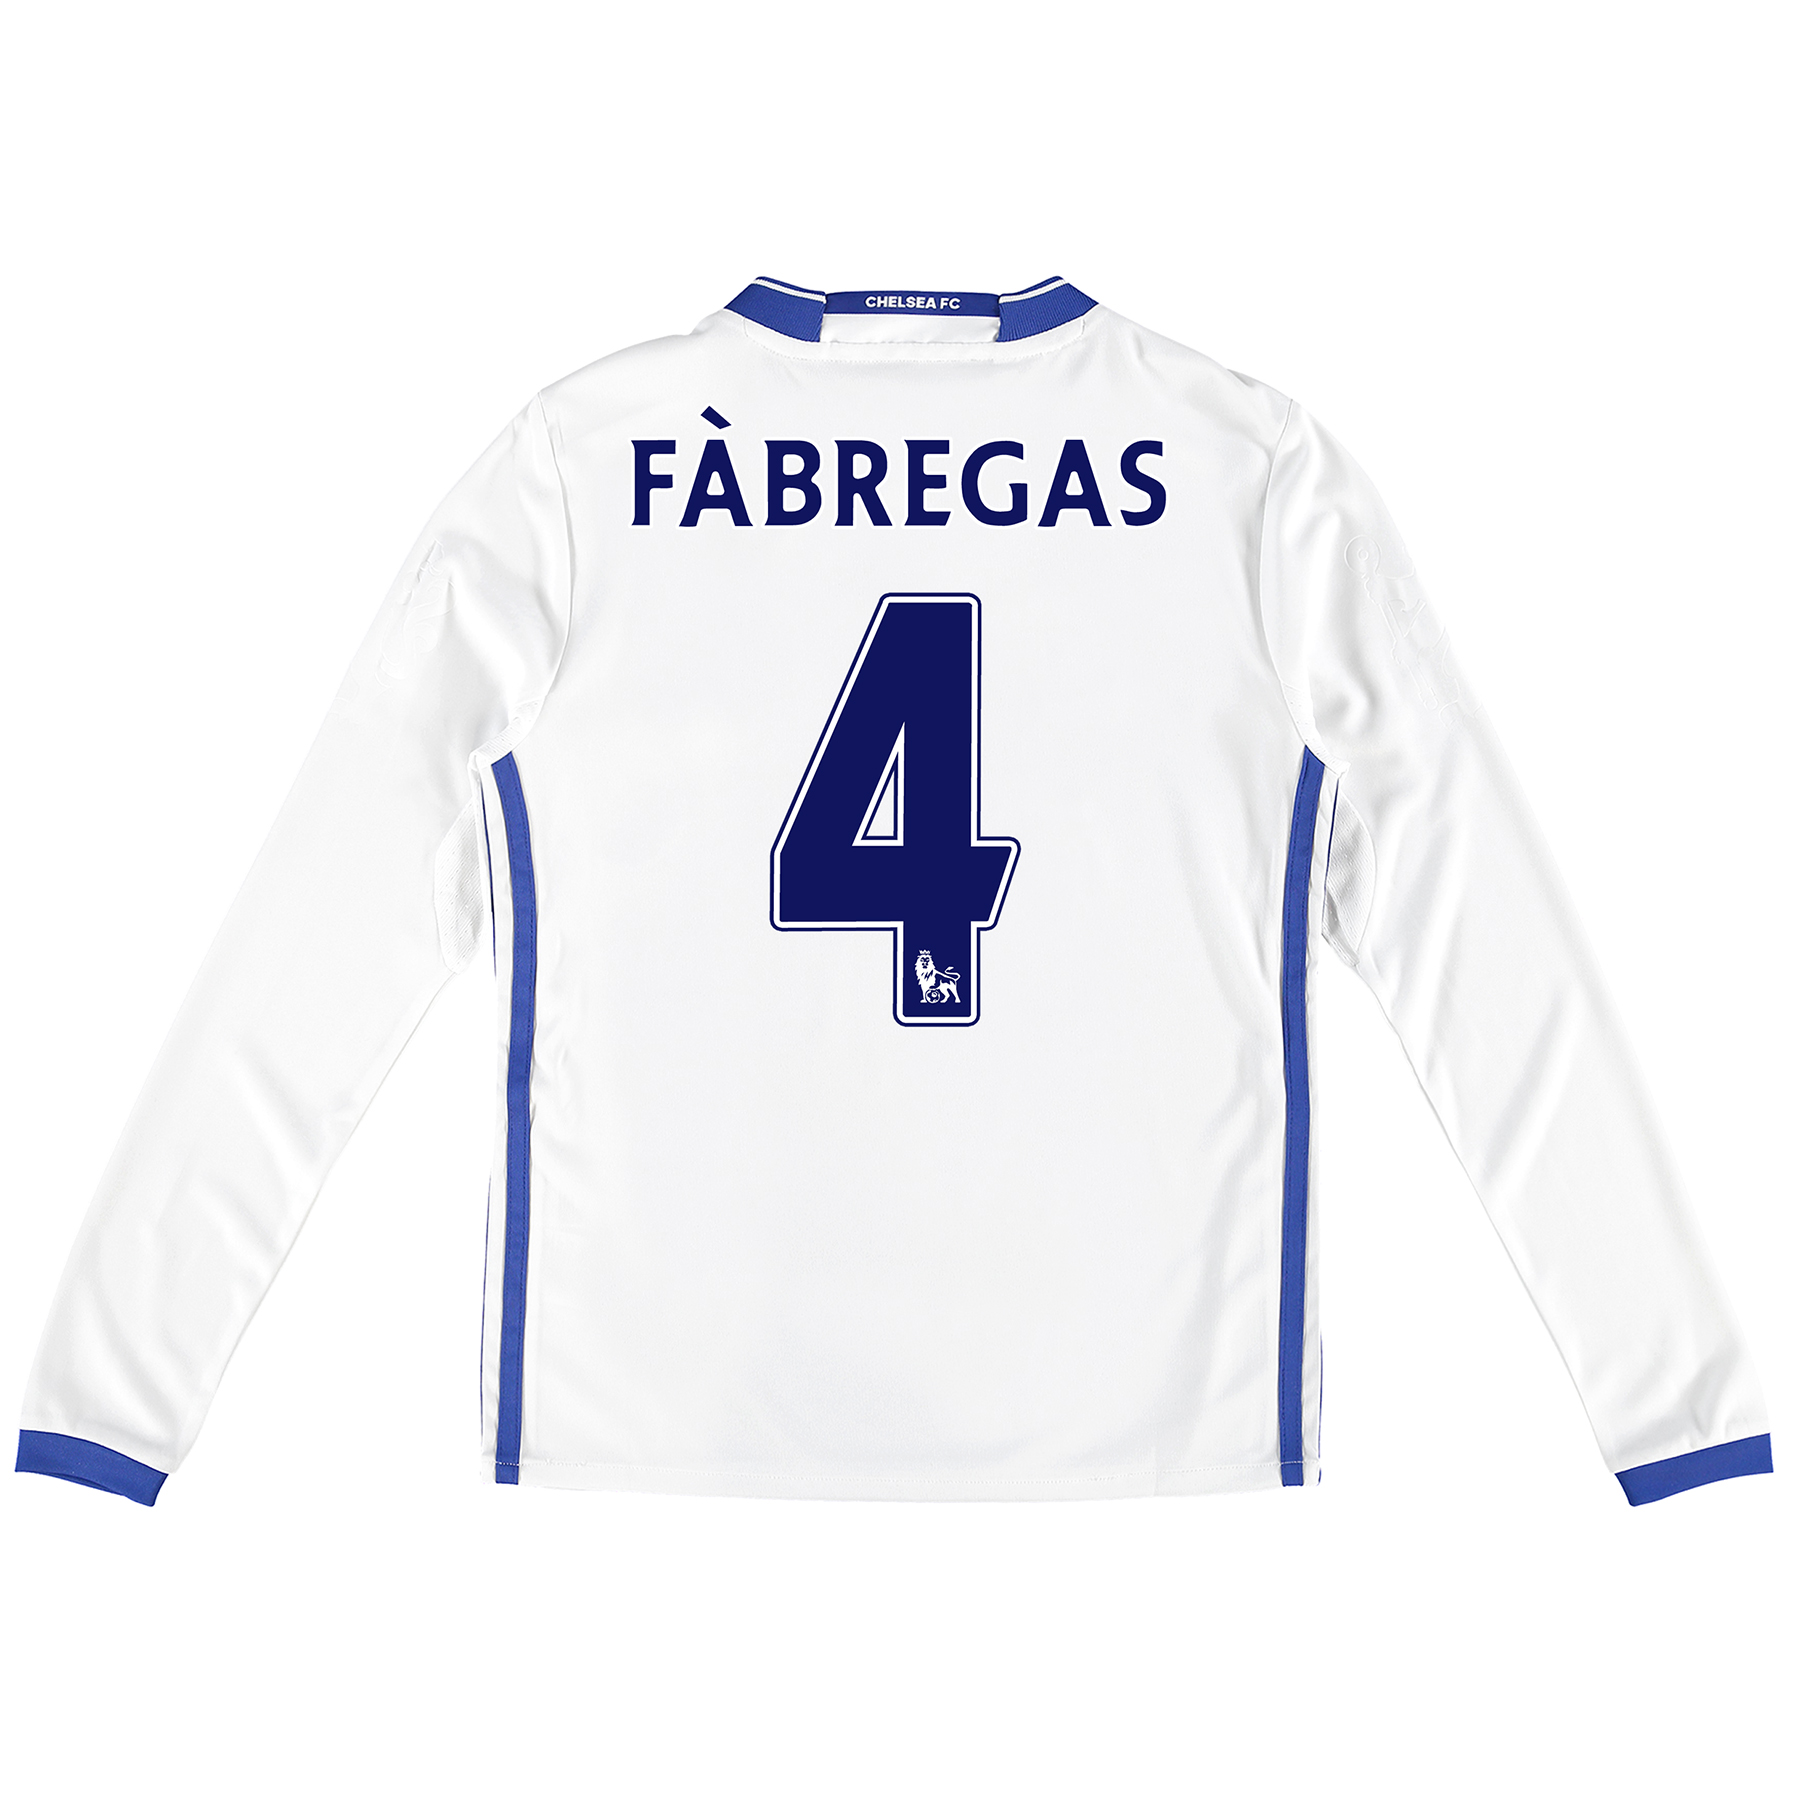 with Fàbregas 4 printing